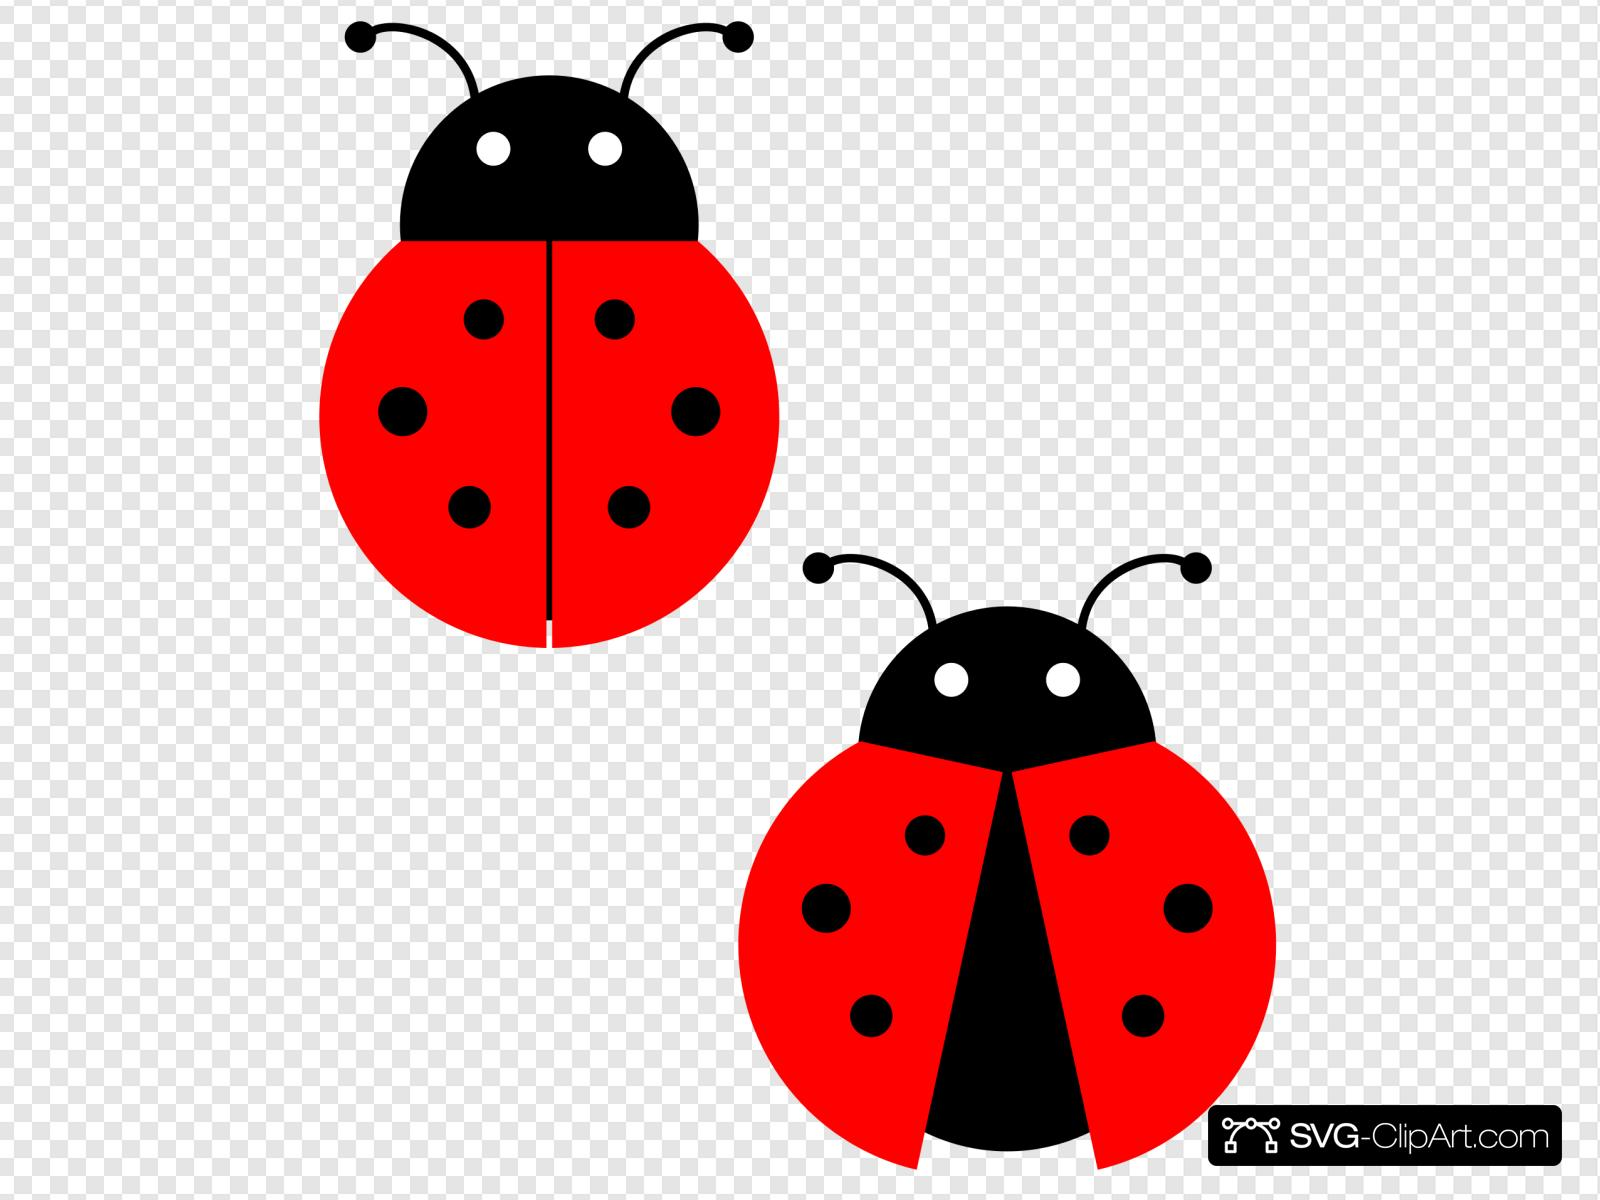 Ladybugs clipart svg. Clip art icon and